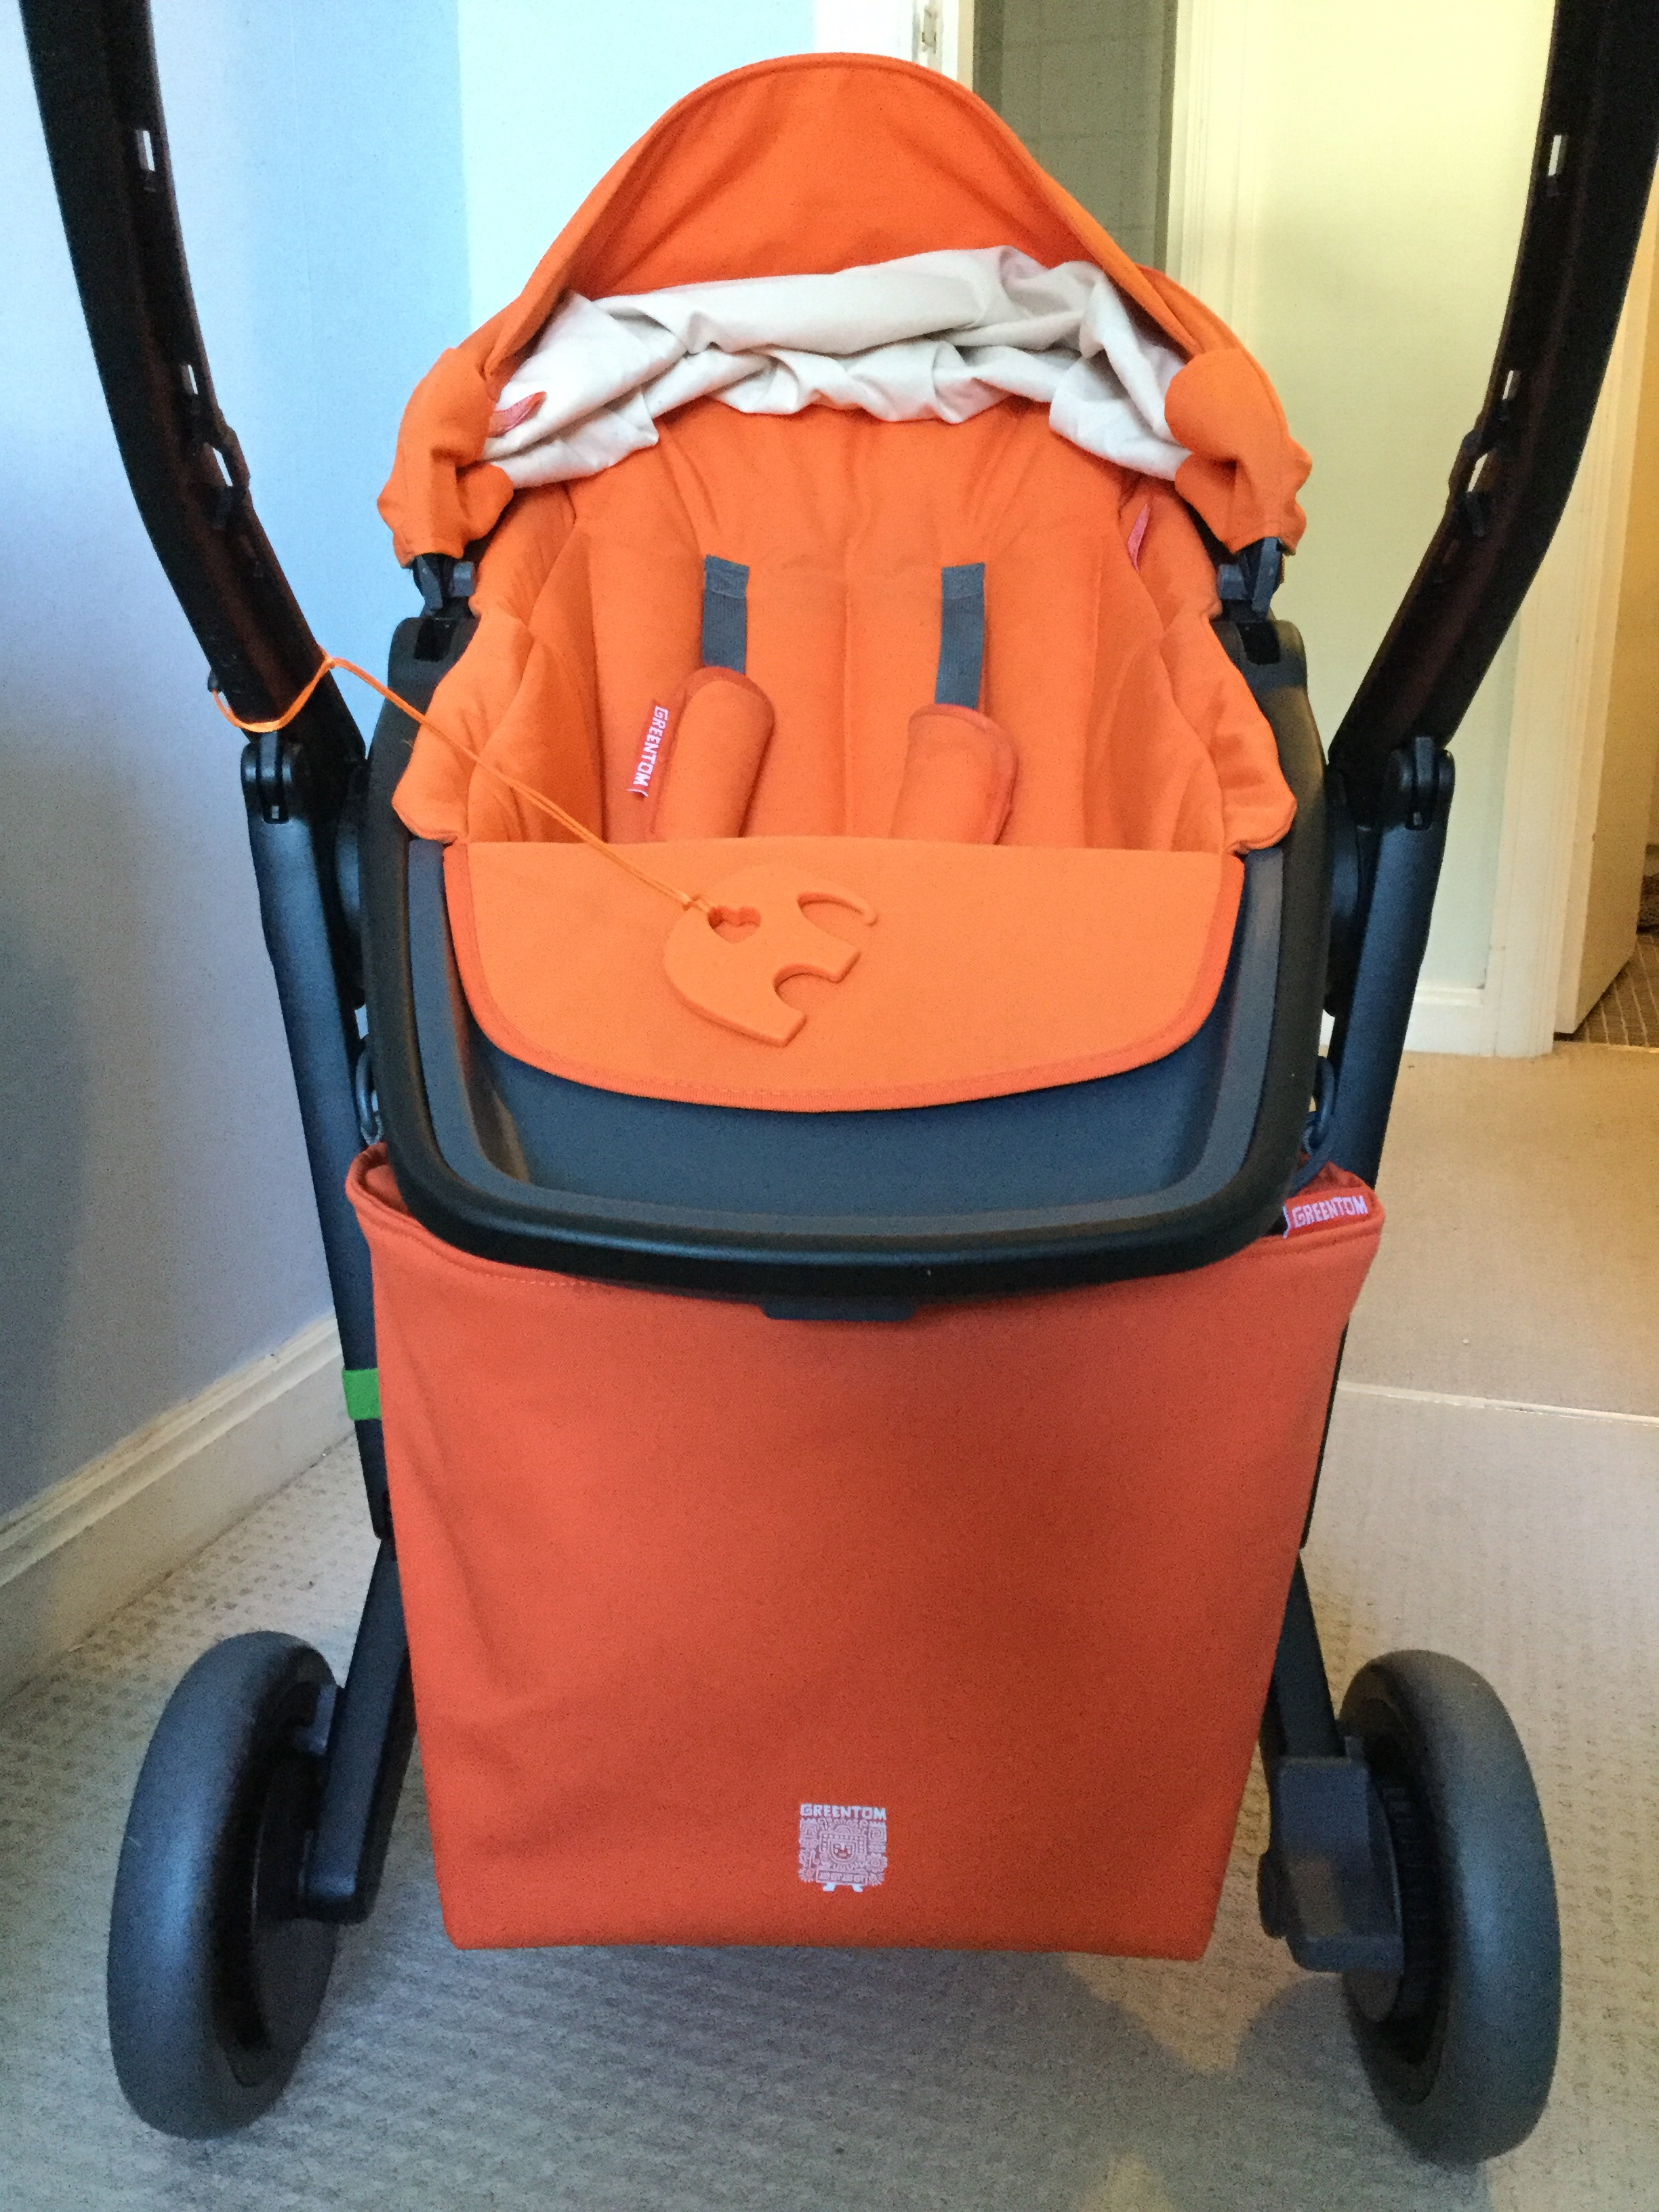 Greentom 100% recycled Dutch designed eco shopping bag that attaches to baby buggy in seconds. Made from plastic bottles in an array of bright colours